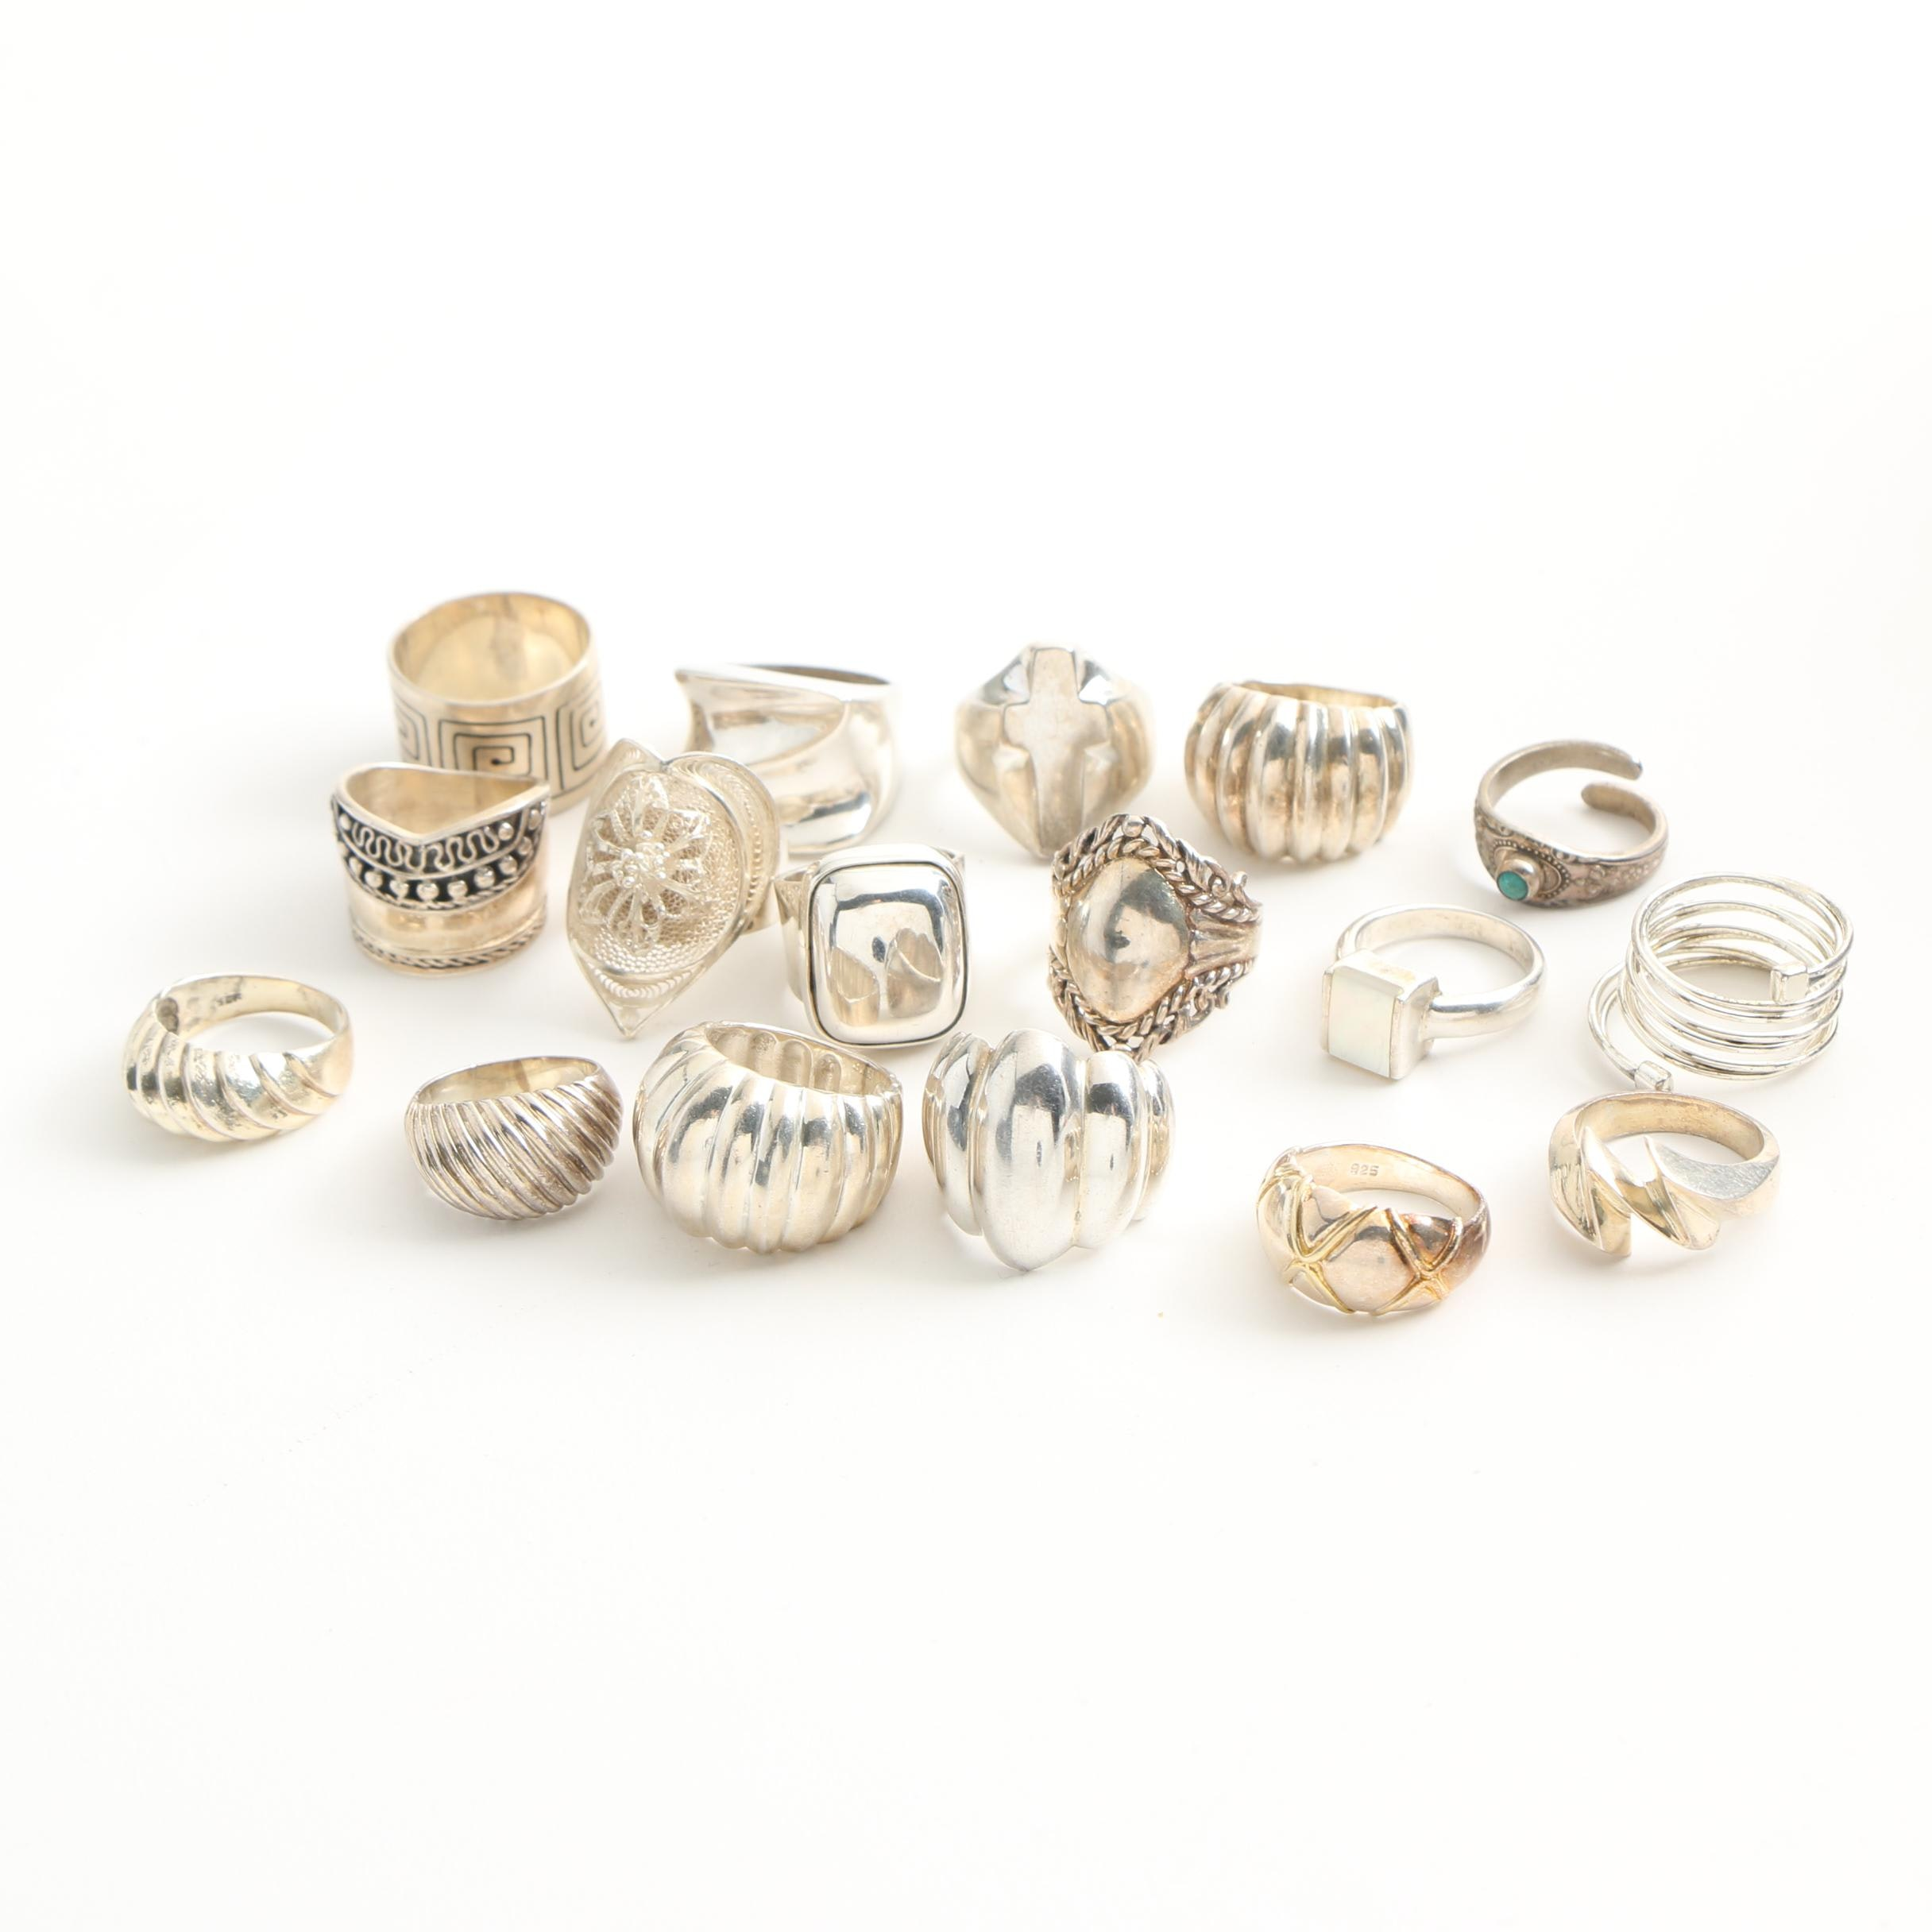 Assortment of Sterling Silver Rings